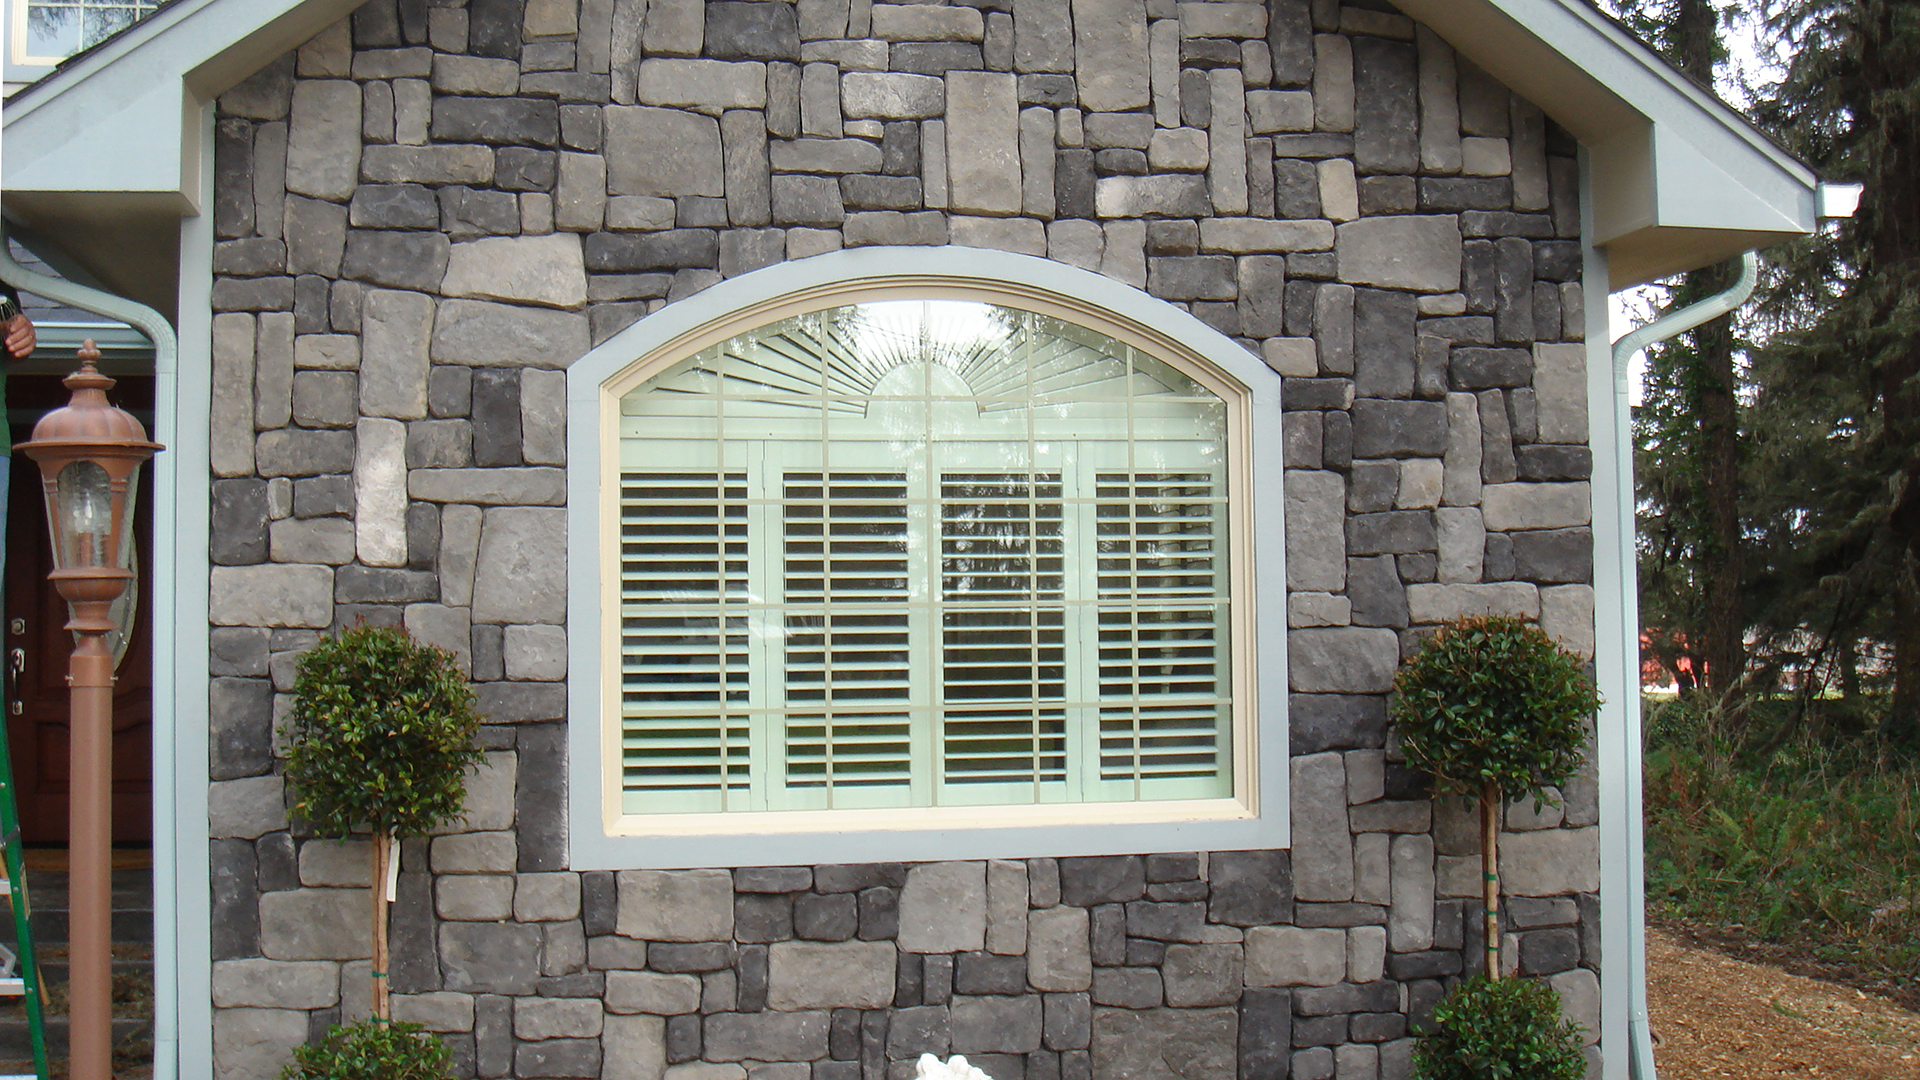 Composite Arch Shutter over Composite Shutters Exterior.jpg